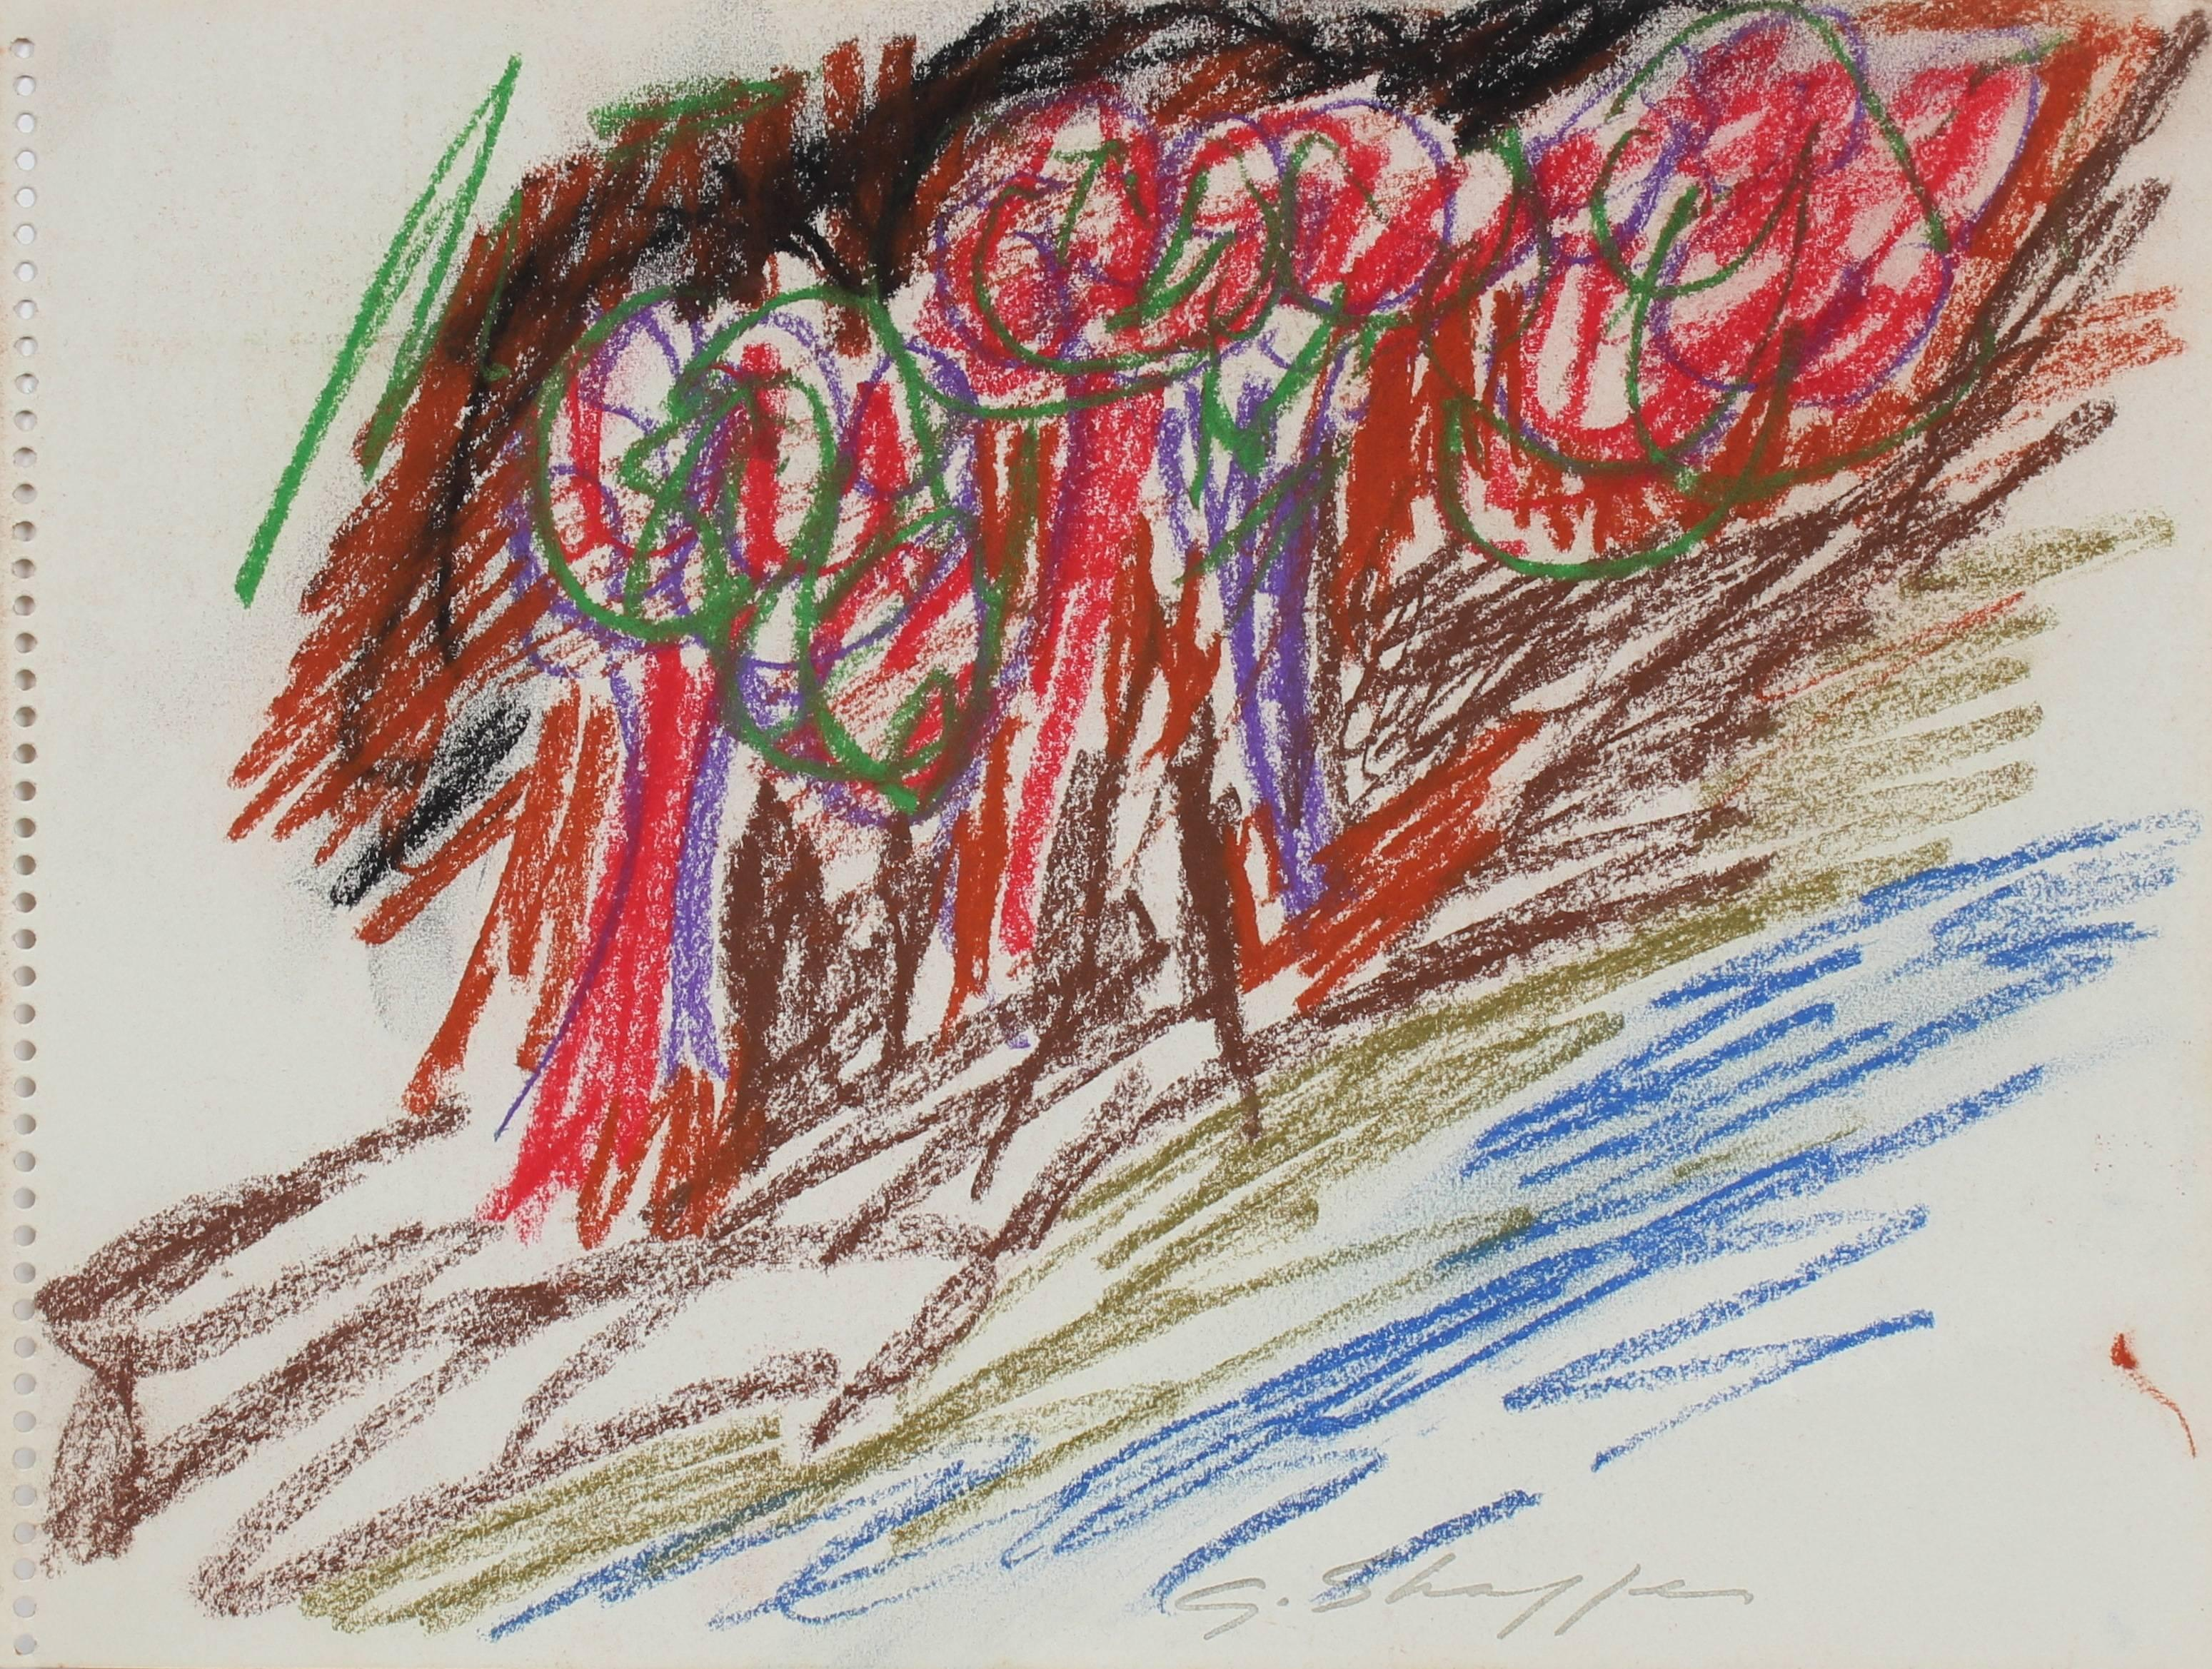 Colorful Abstract Expressionist Study in Pastel with Red and Blue, 1963